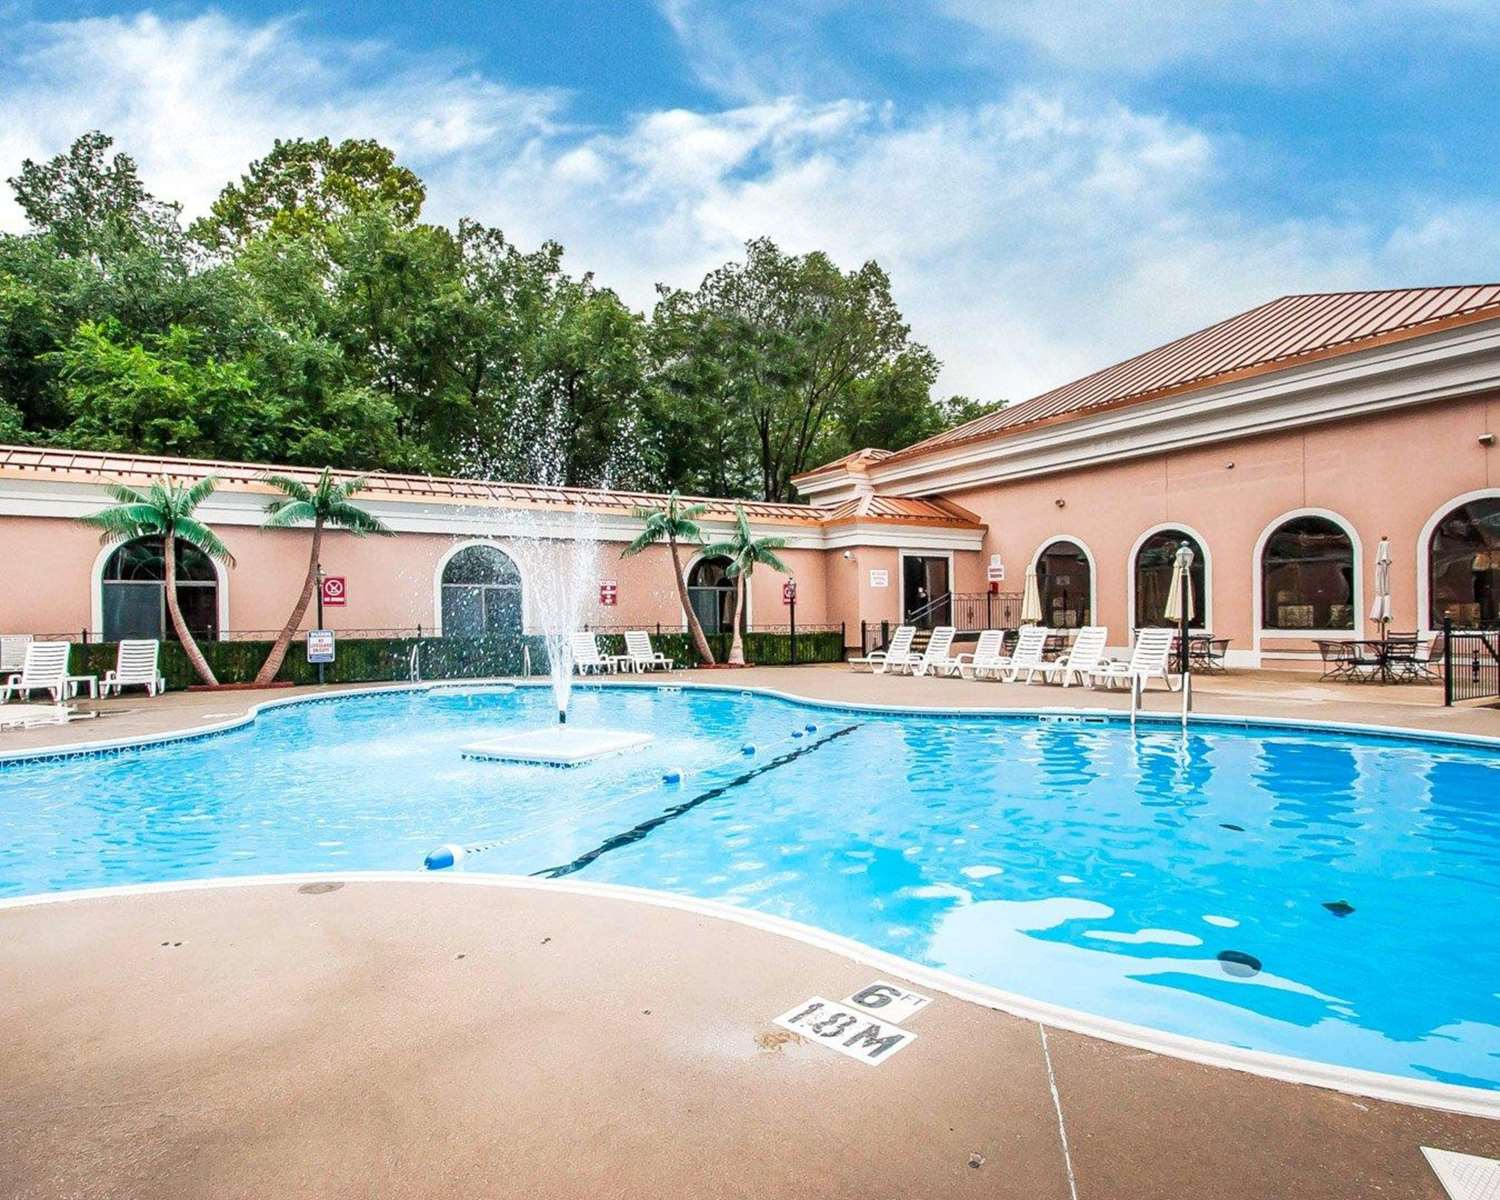 Pool - Clarion Hotel at the Palace Branson